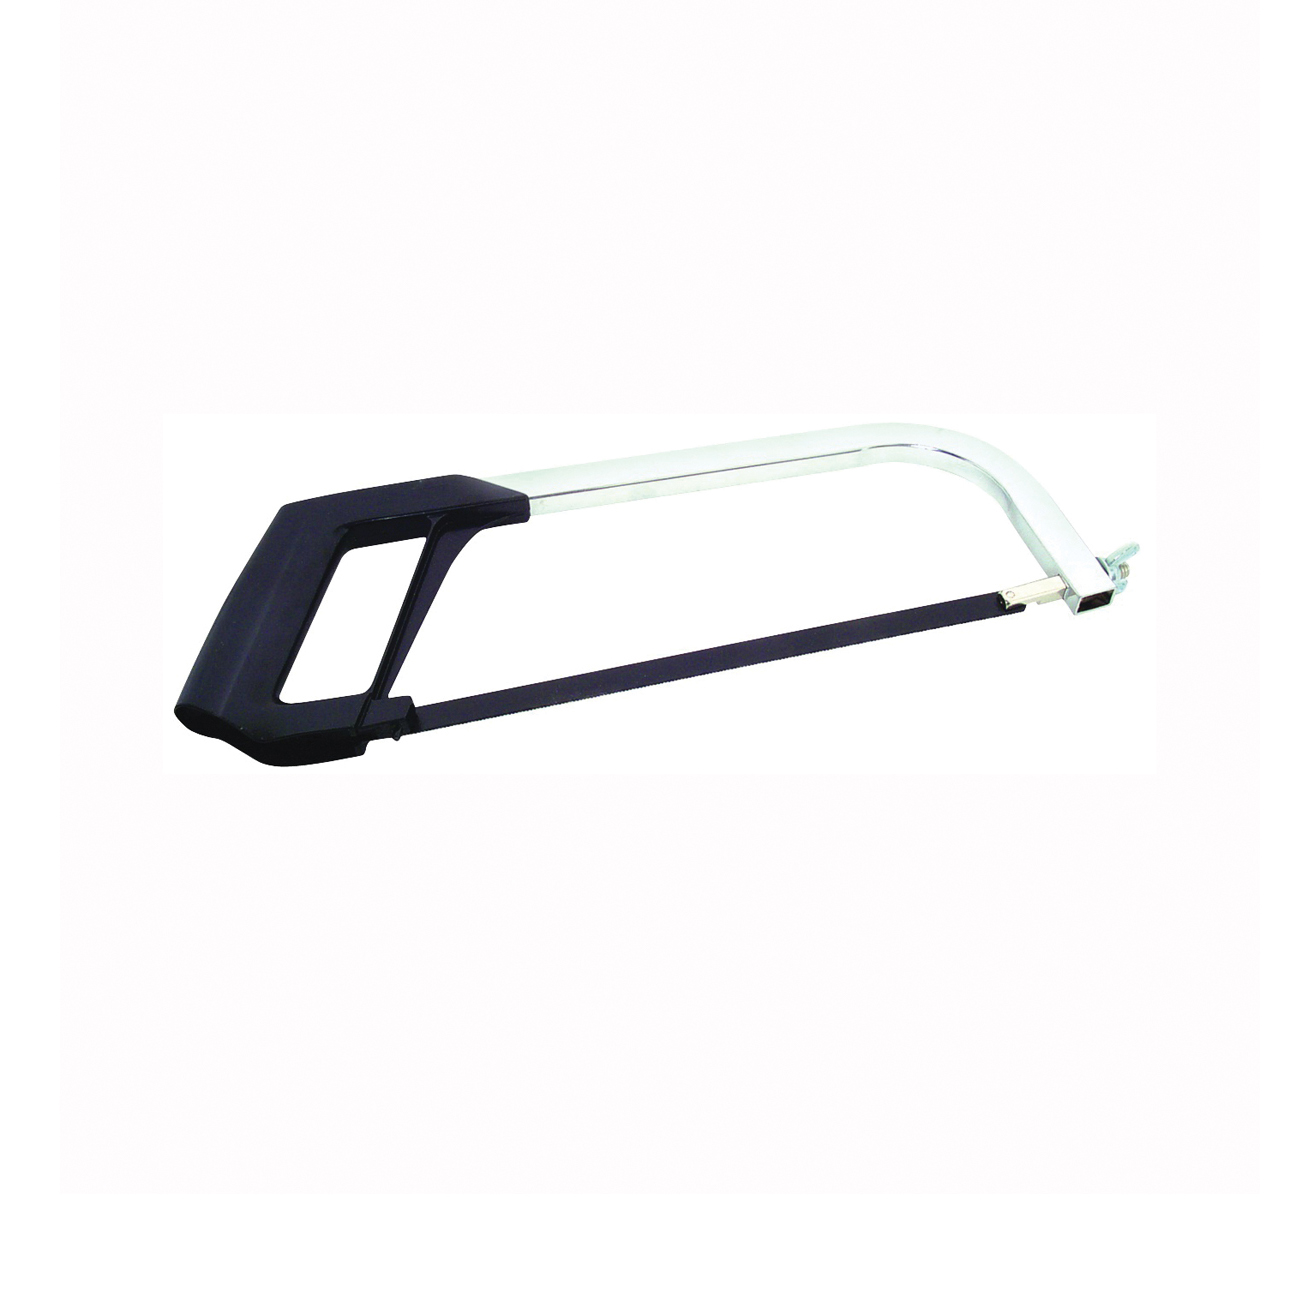 Picture of Crescent Nicholson 80951 Hacksaw Frame, 10 to 12 in L Blade, 3-1/2 in D Throat, Pistol-Grip Handle